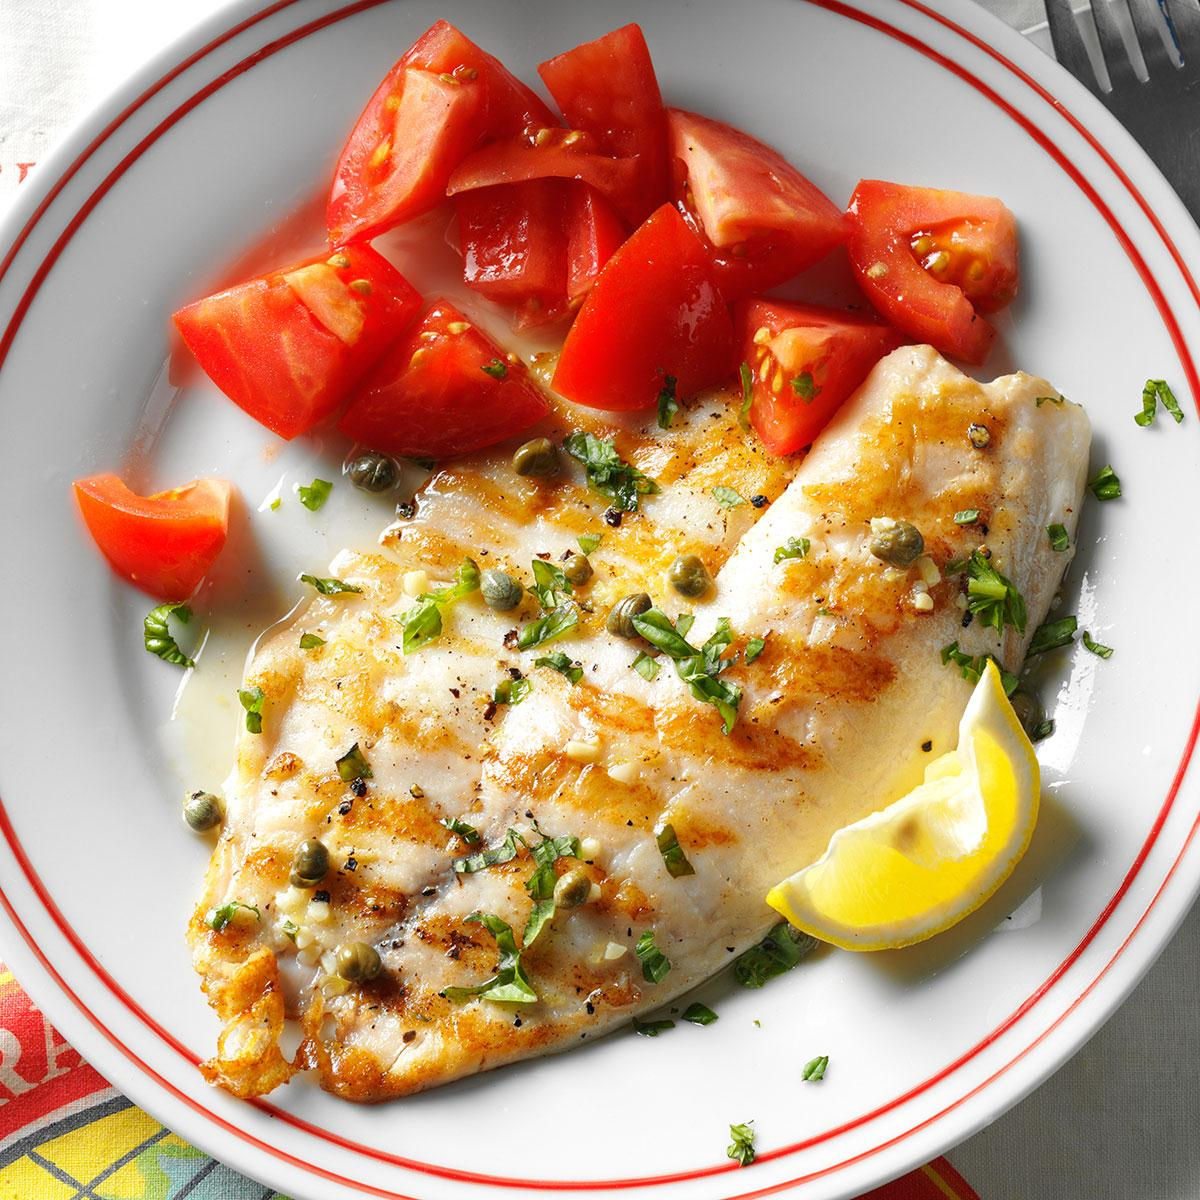 Thrifty Home How To Grill Tilapia On Stove How To Grill Tilapia Fillets Grilled Tilapia Piccata Recipe Taste Oven nice food How To Grill Tilapia